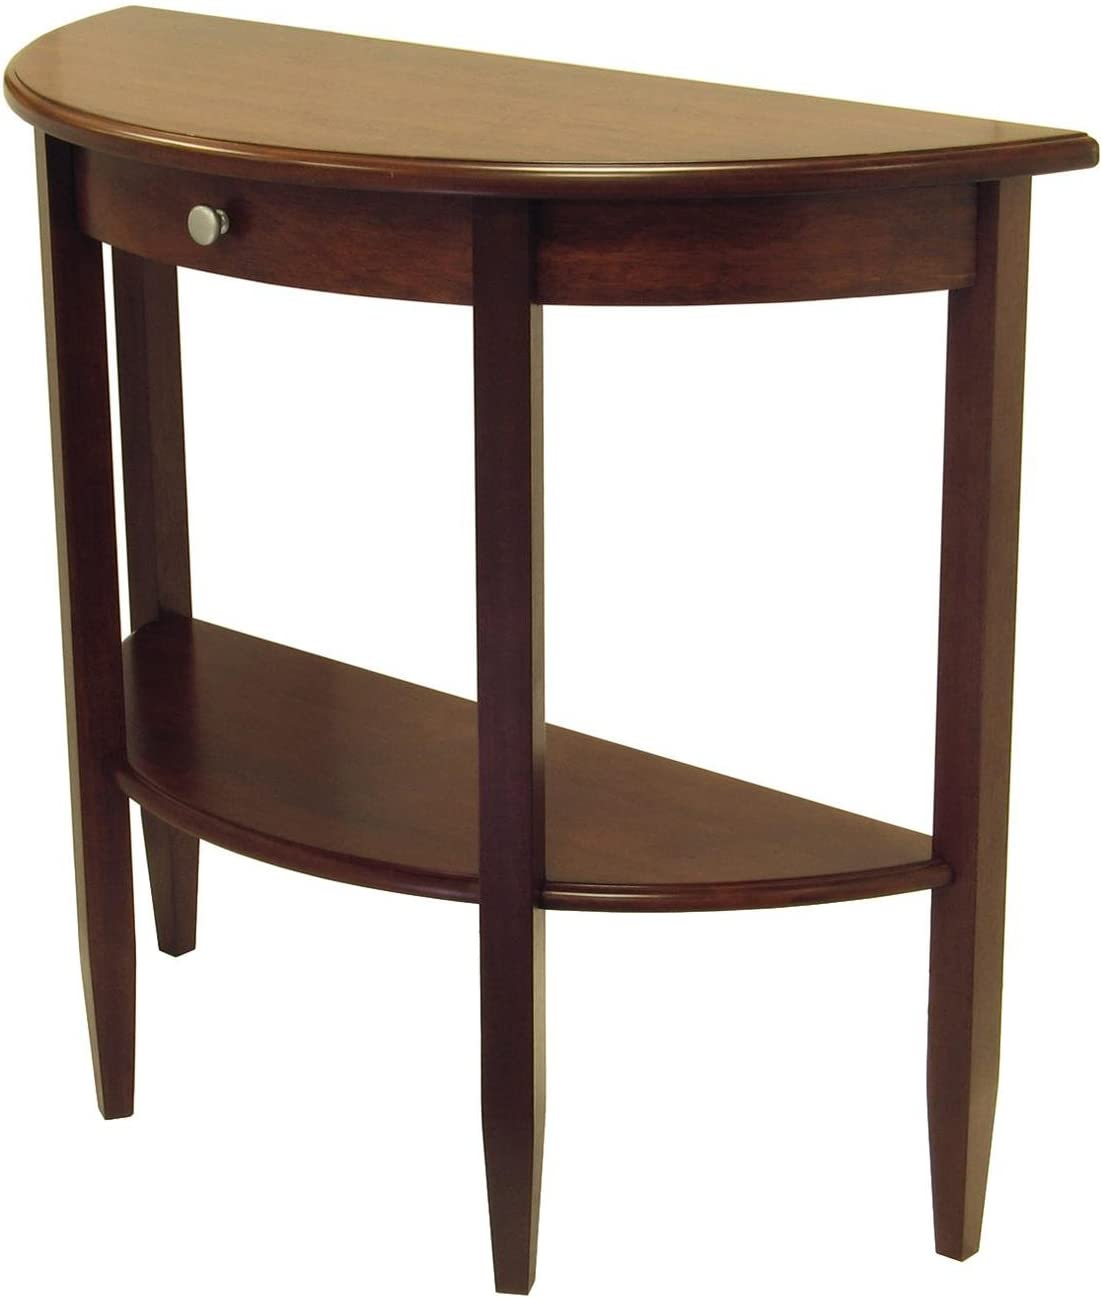 Concord Hall Console Table, Half Moon with Drawer, Shelf